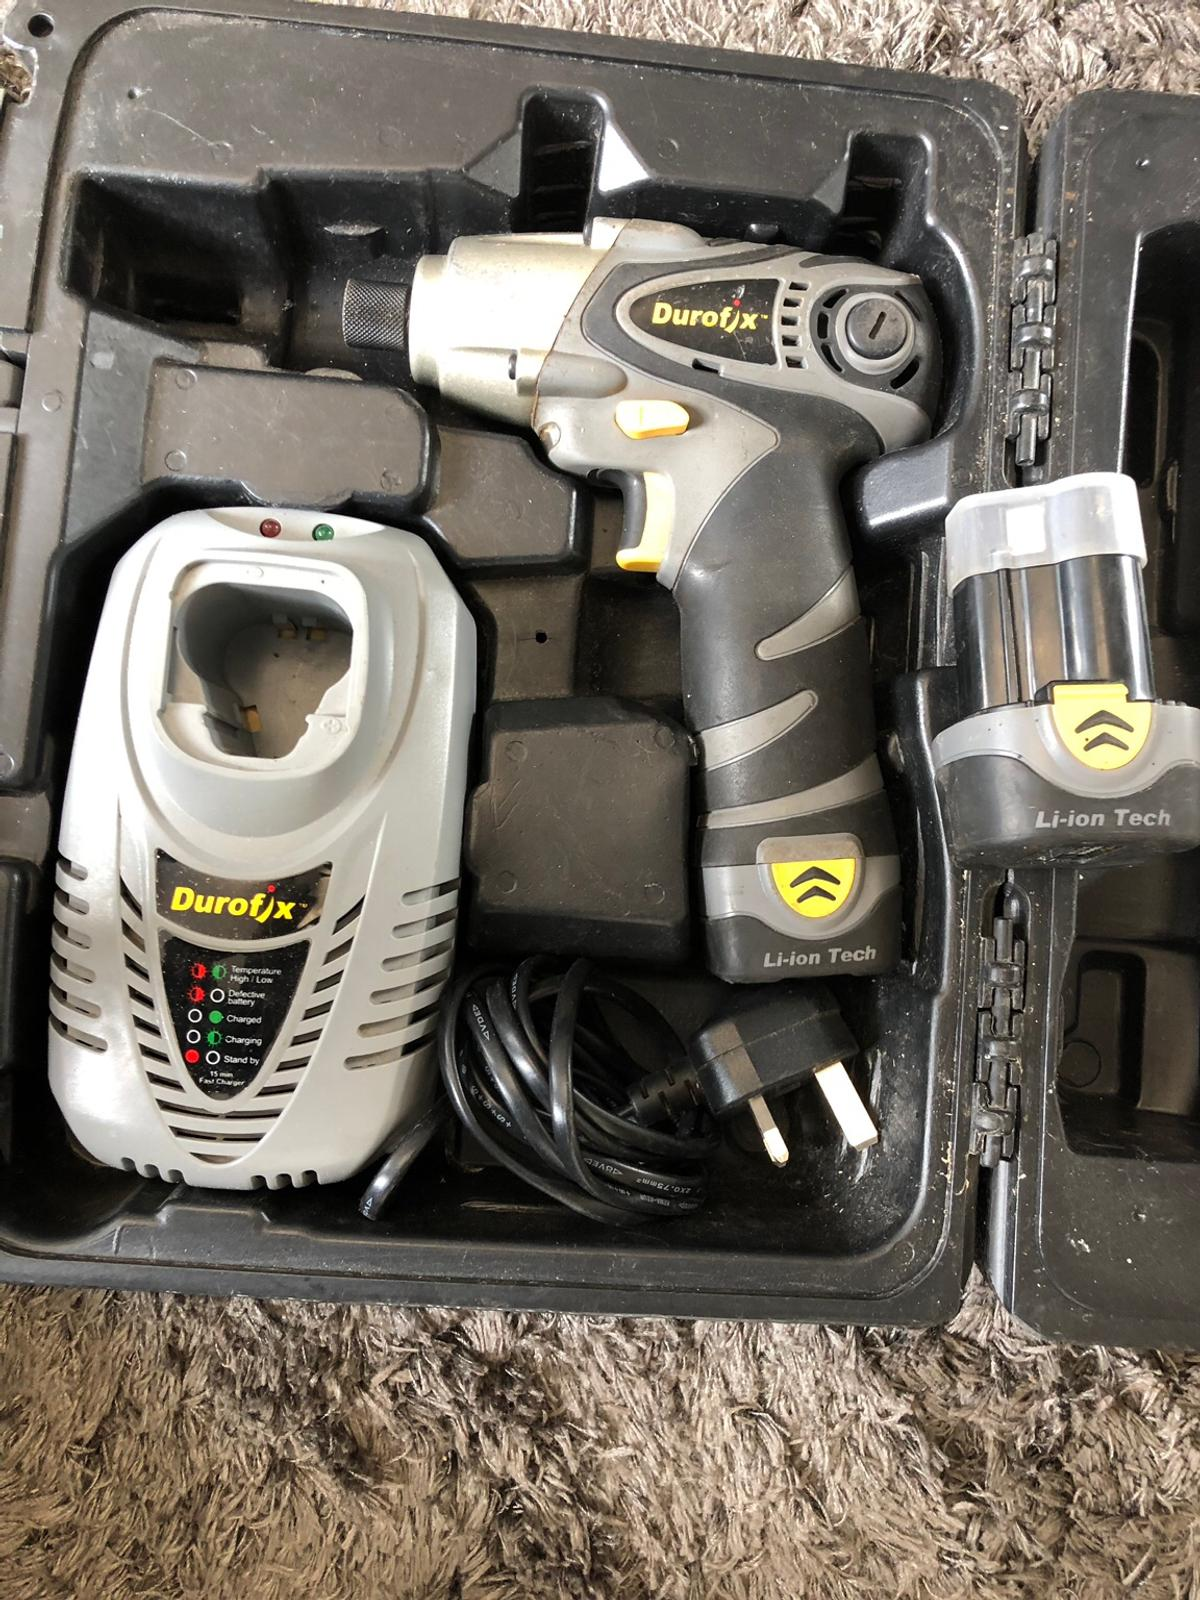 DUROFIX 10.8 IMPACT DRIVER WINDOWS